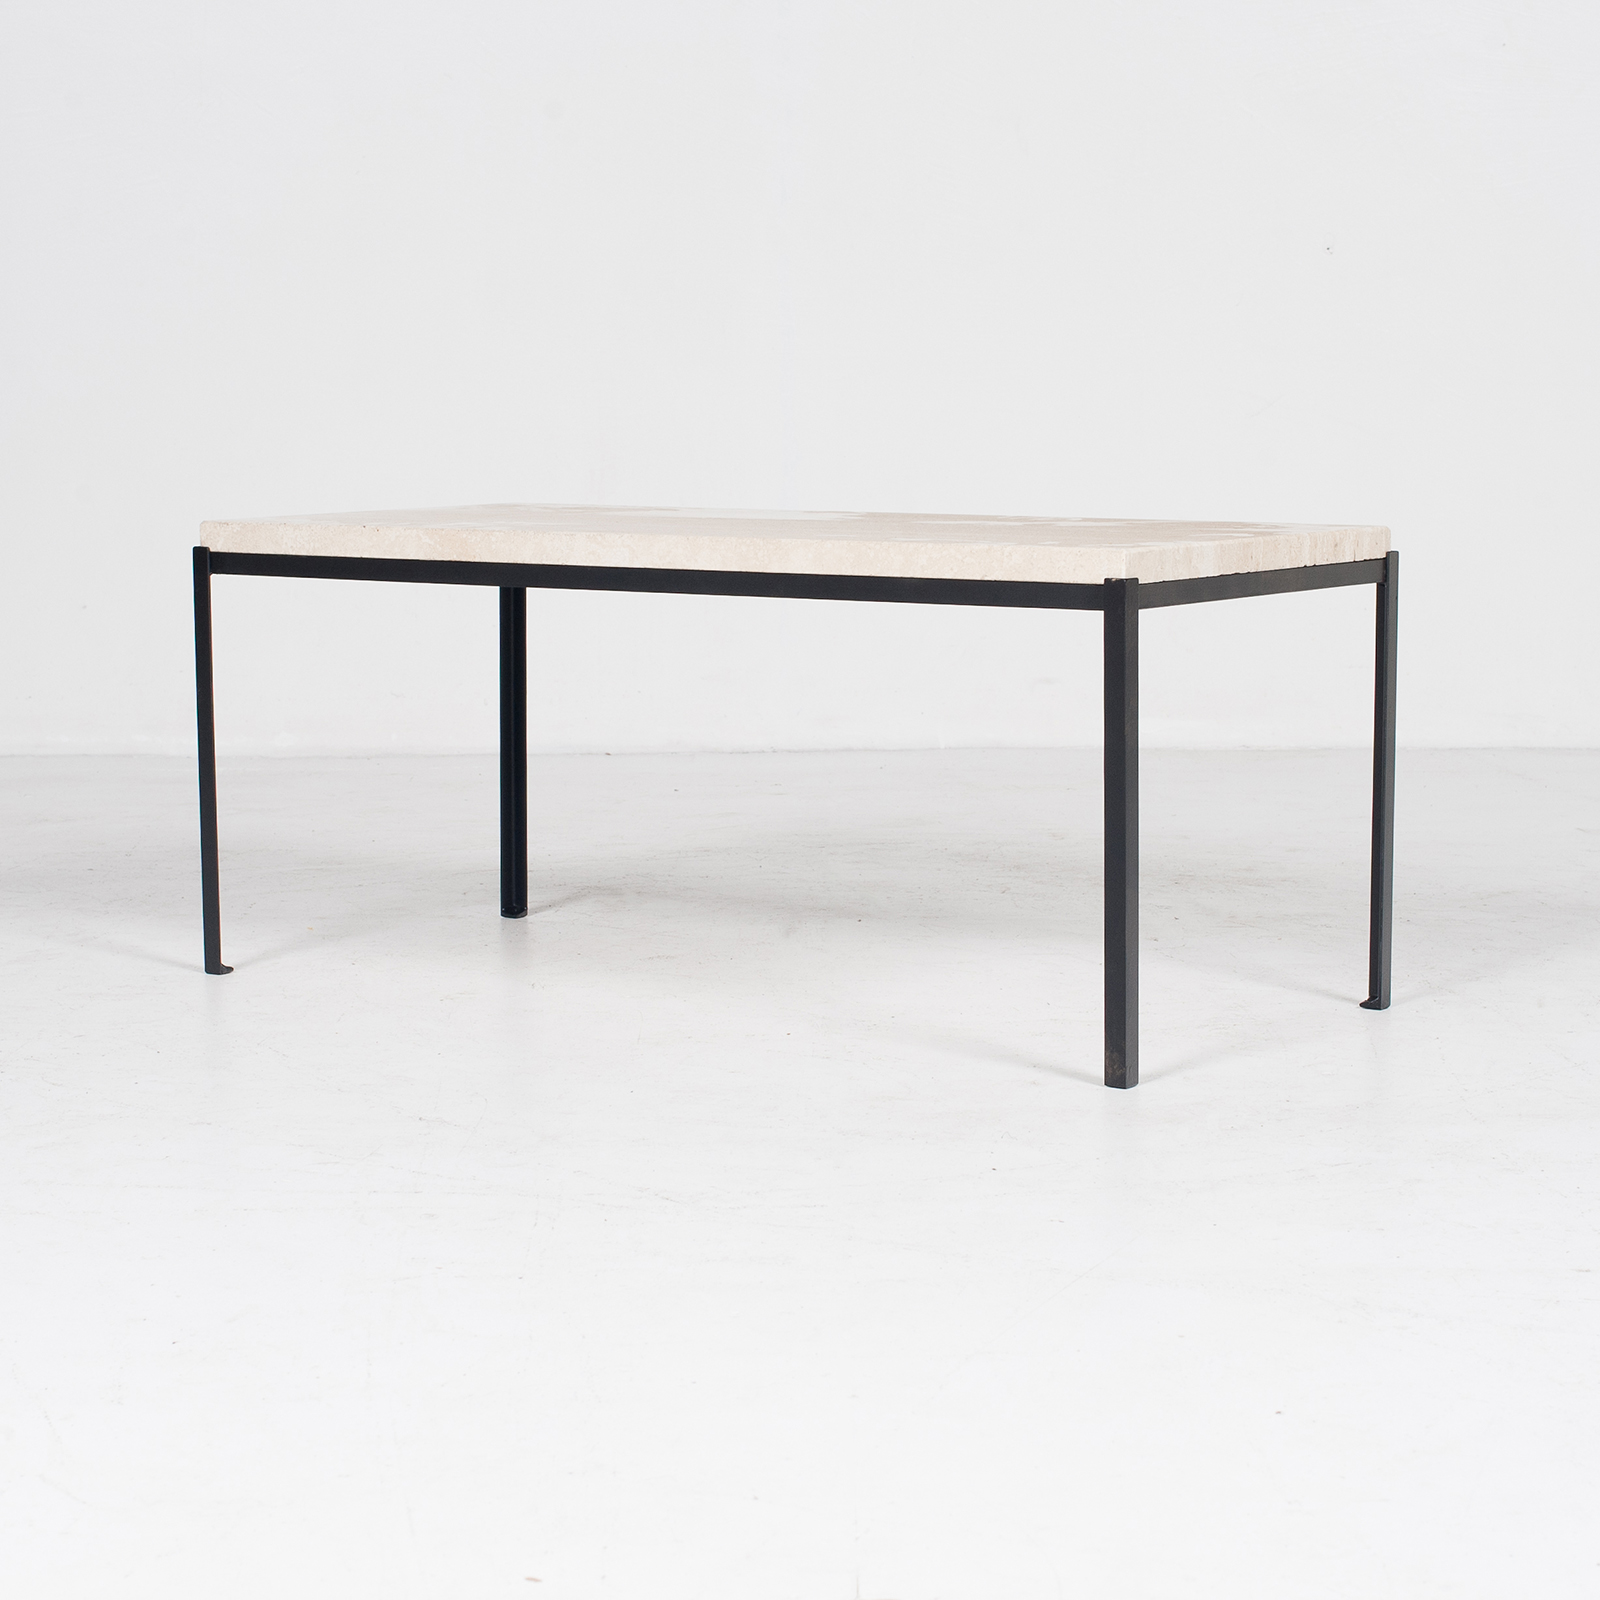 Coffee Table By Artemide With Travertine Top, 1970s, The Netherlands5